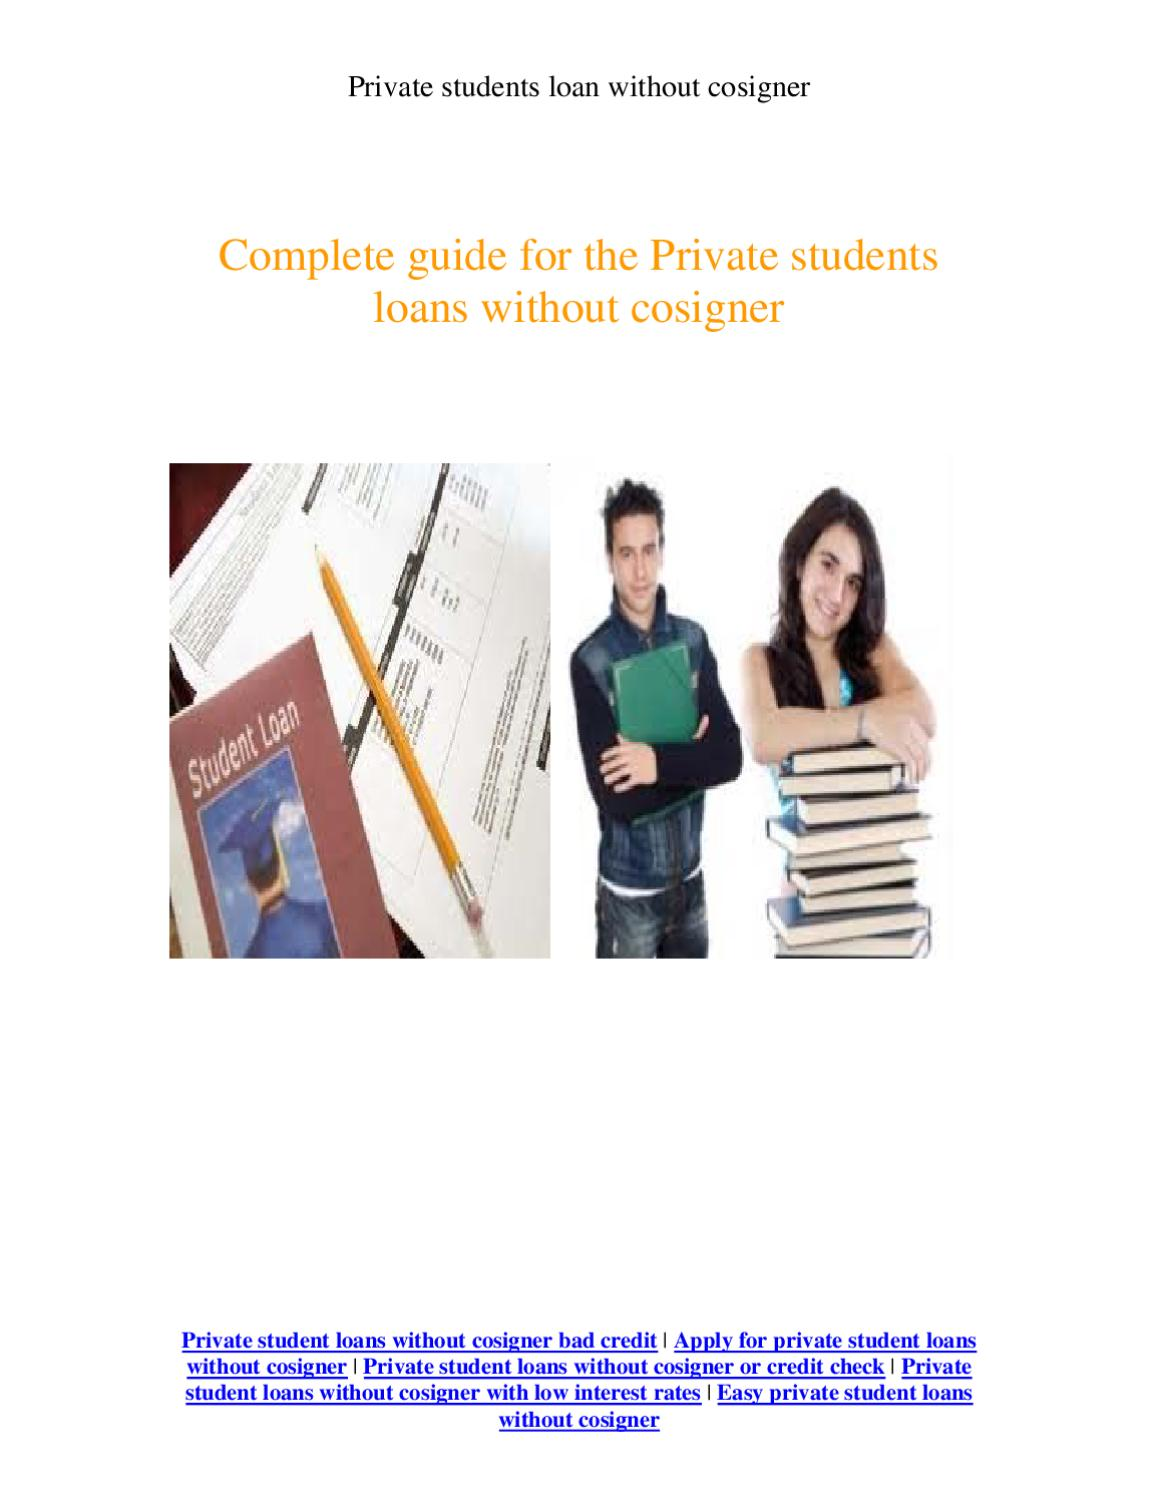 Guide For Private Student Loans Without Cosigner By Martin. College Application Due Dates. Best Engineering Firms To Work For. Drug Treatment Seattle Proxy Surf Anonymously. Window Coverings Hardware Deep Vein Thrombus. Windows Server 2011 Add Ins Gmo Mutual Funds. Santa Barbara Boarding School. Universities In Virgina Music Schools College. Chattanooga State Middle College